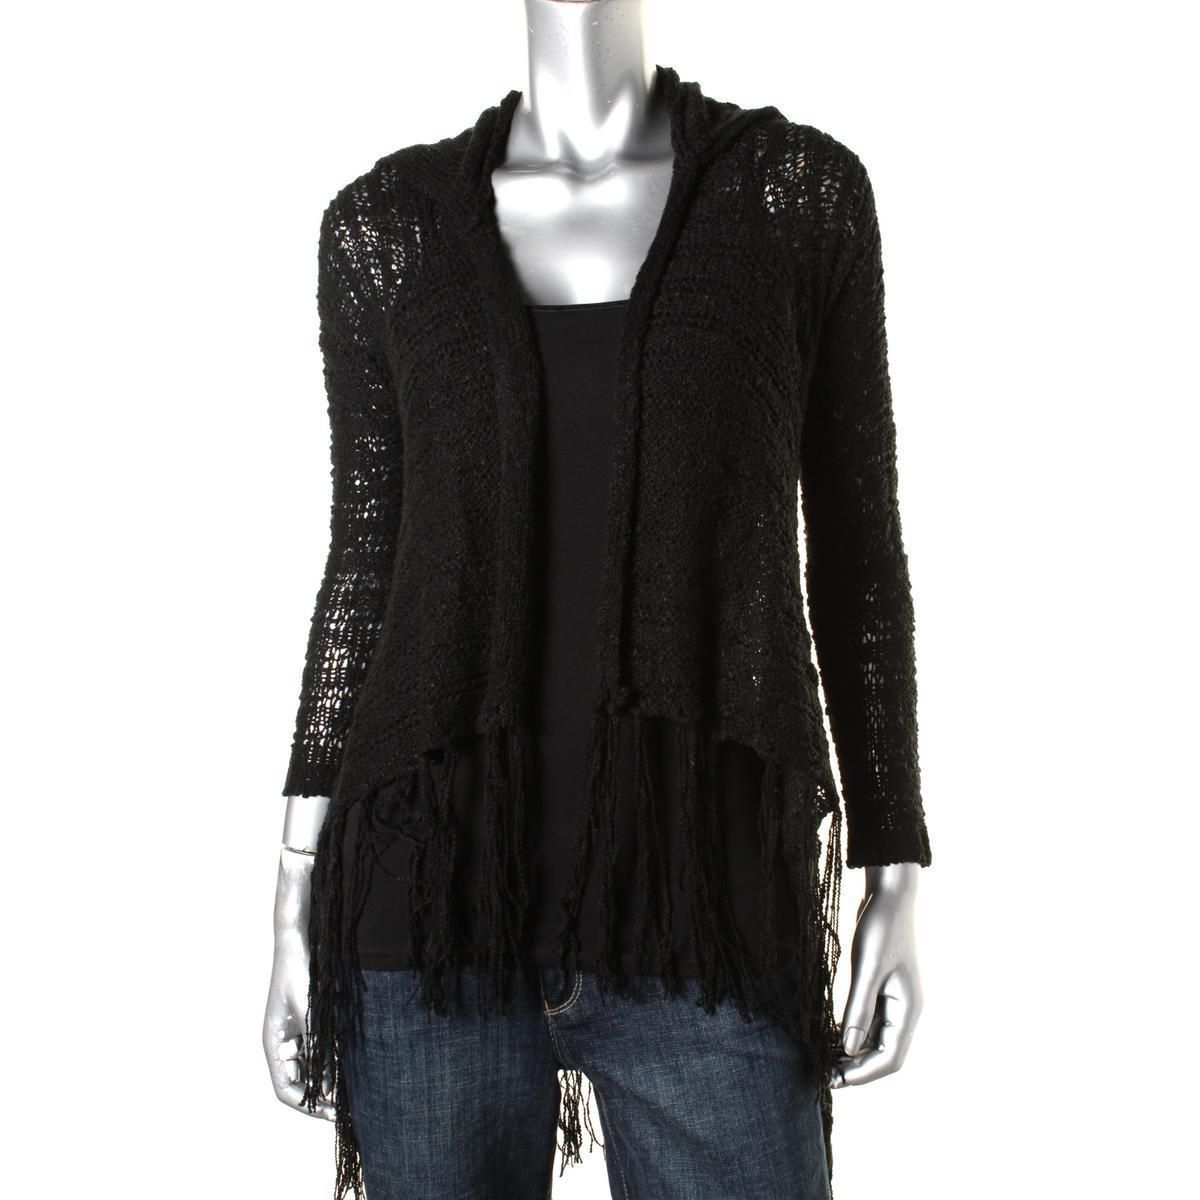 Planet Gold 9880 Womens Hooded Duster Fringe Cardigan Sweater ...